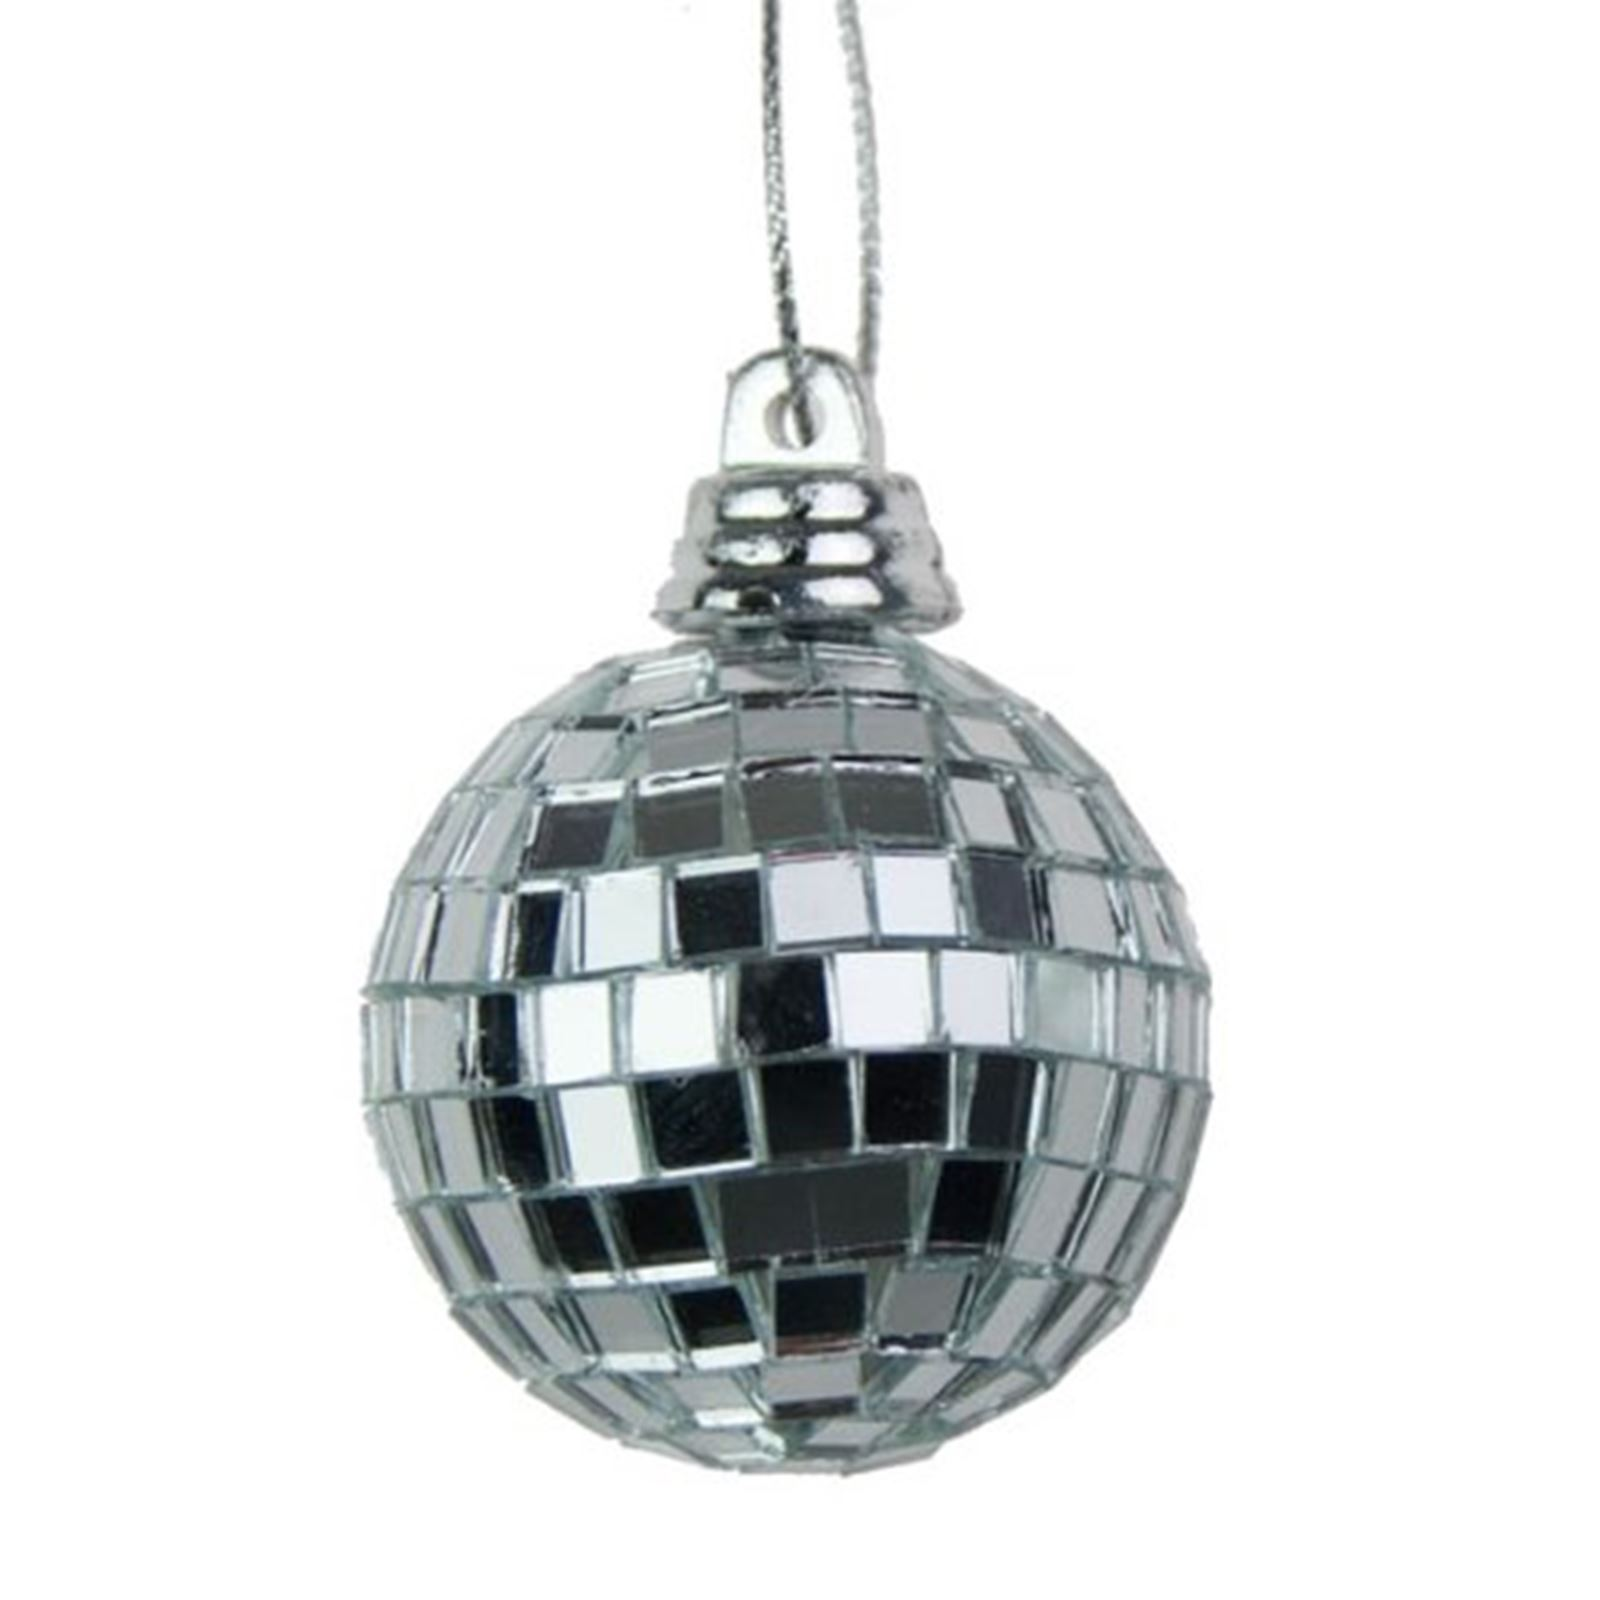 Christmas Disco Ball.Details About Silver Mini Disco Mirror Ball Xmas Tree Bauble Home Party Decorations Gift Craft